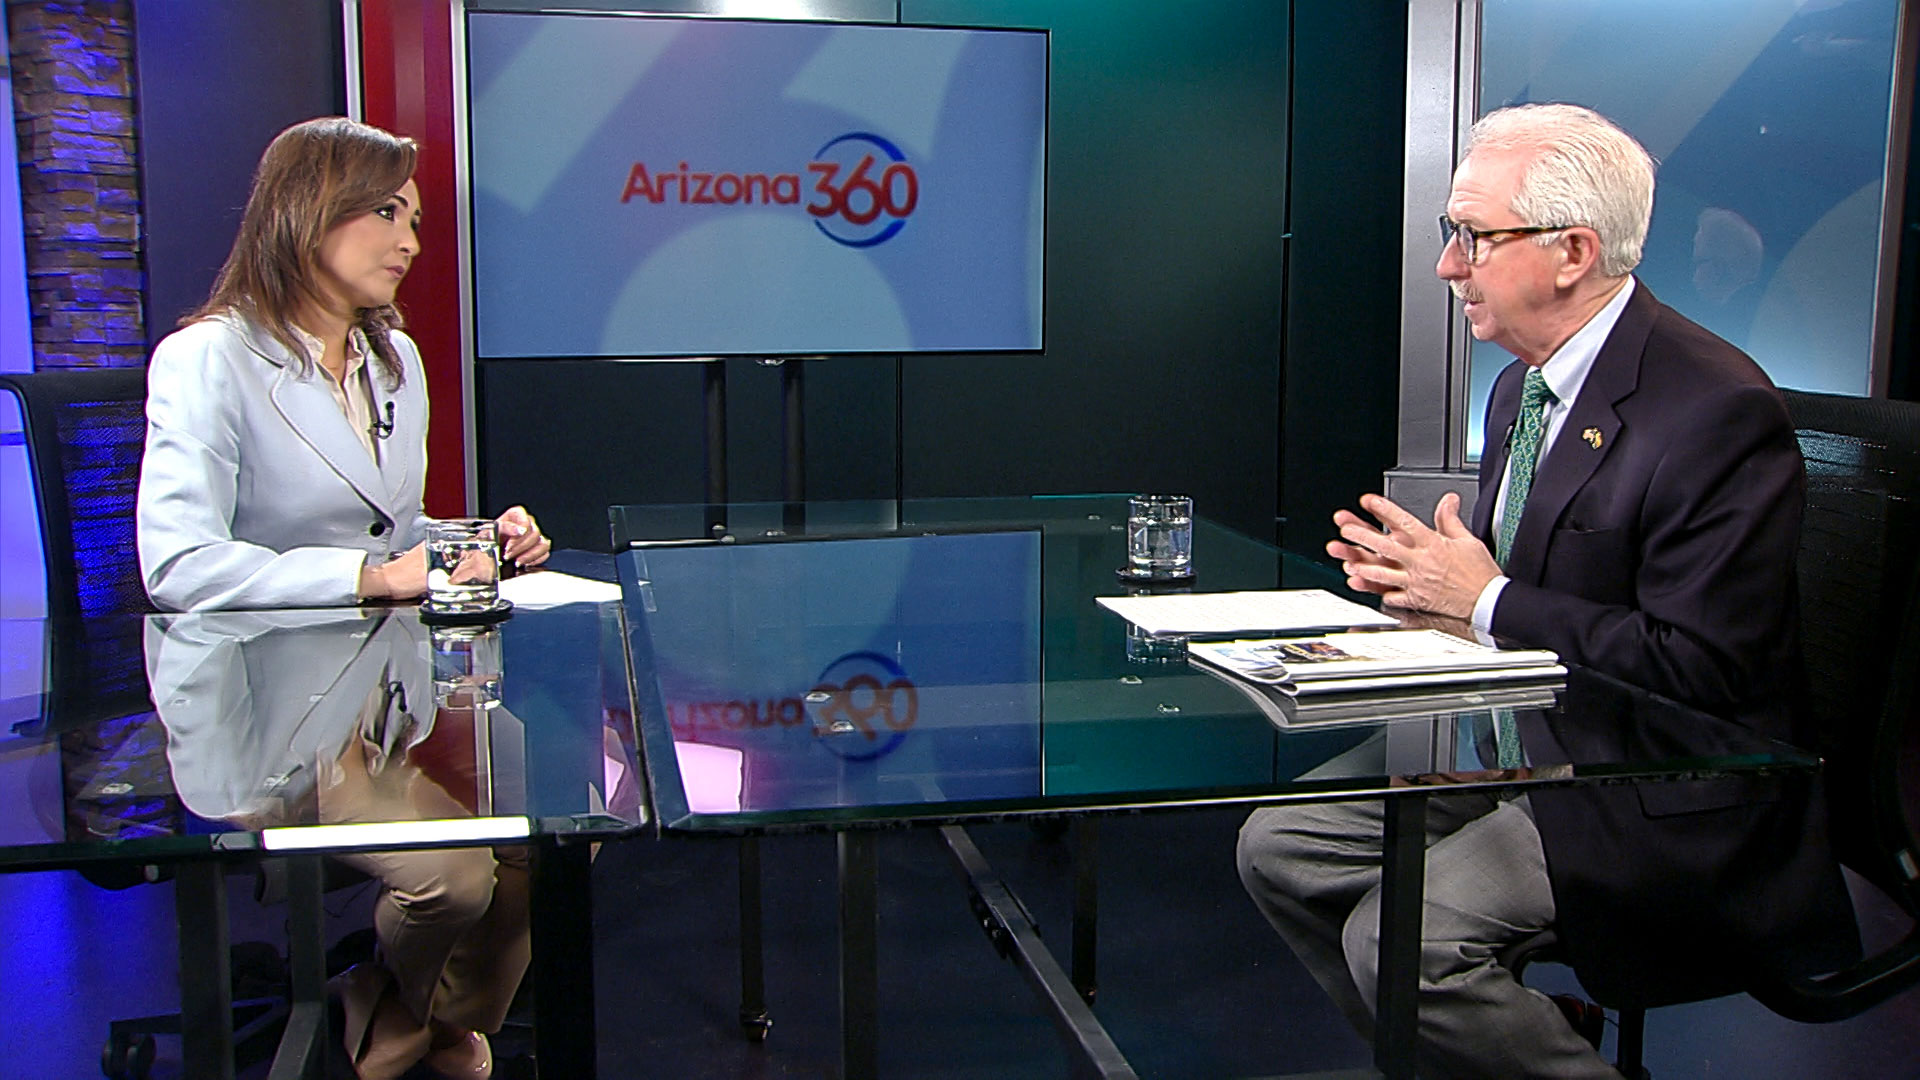 Arizona 360 host Lorraine Rivera interviews Alan Maguire at Arizona Public Media. Maguire is president of the Phoenix-based consulting firm the Maguire Company.